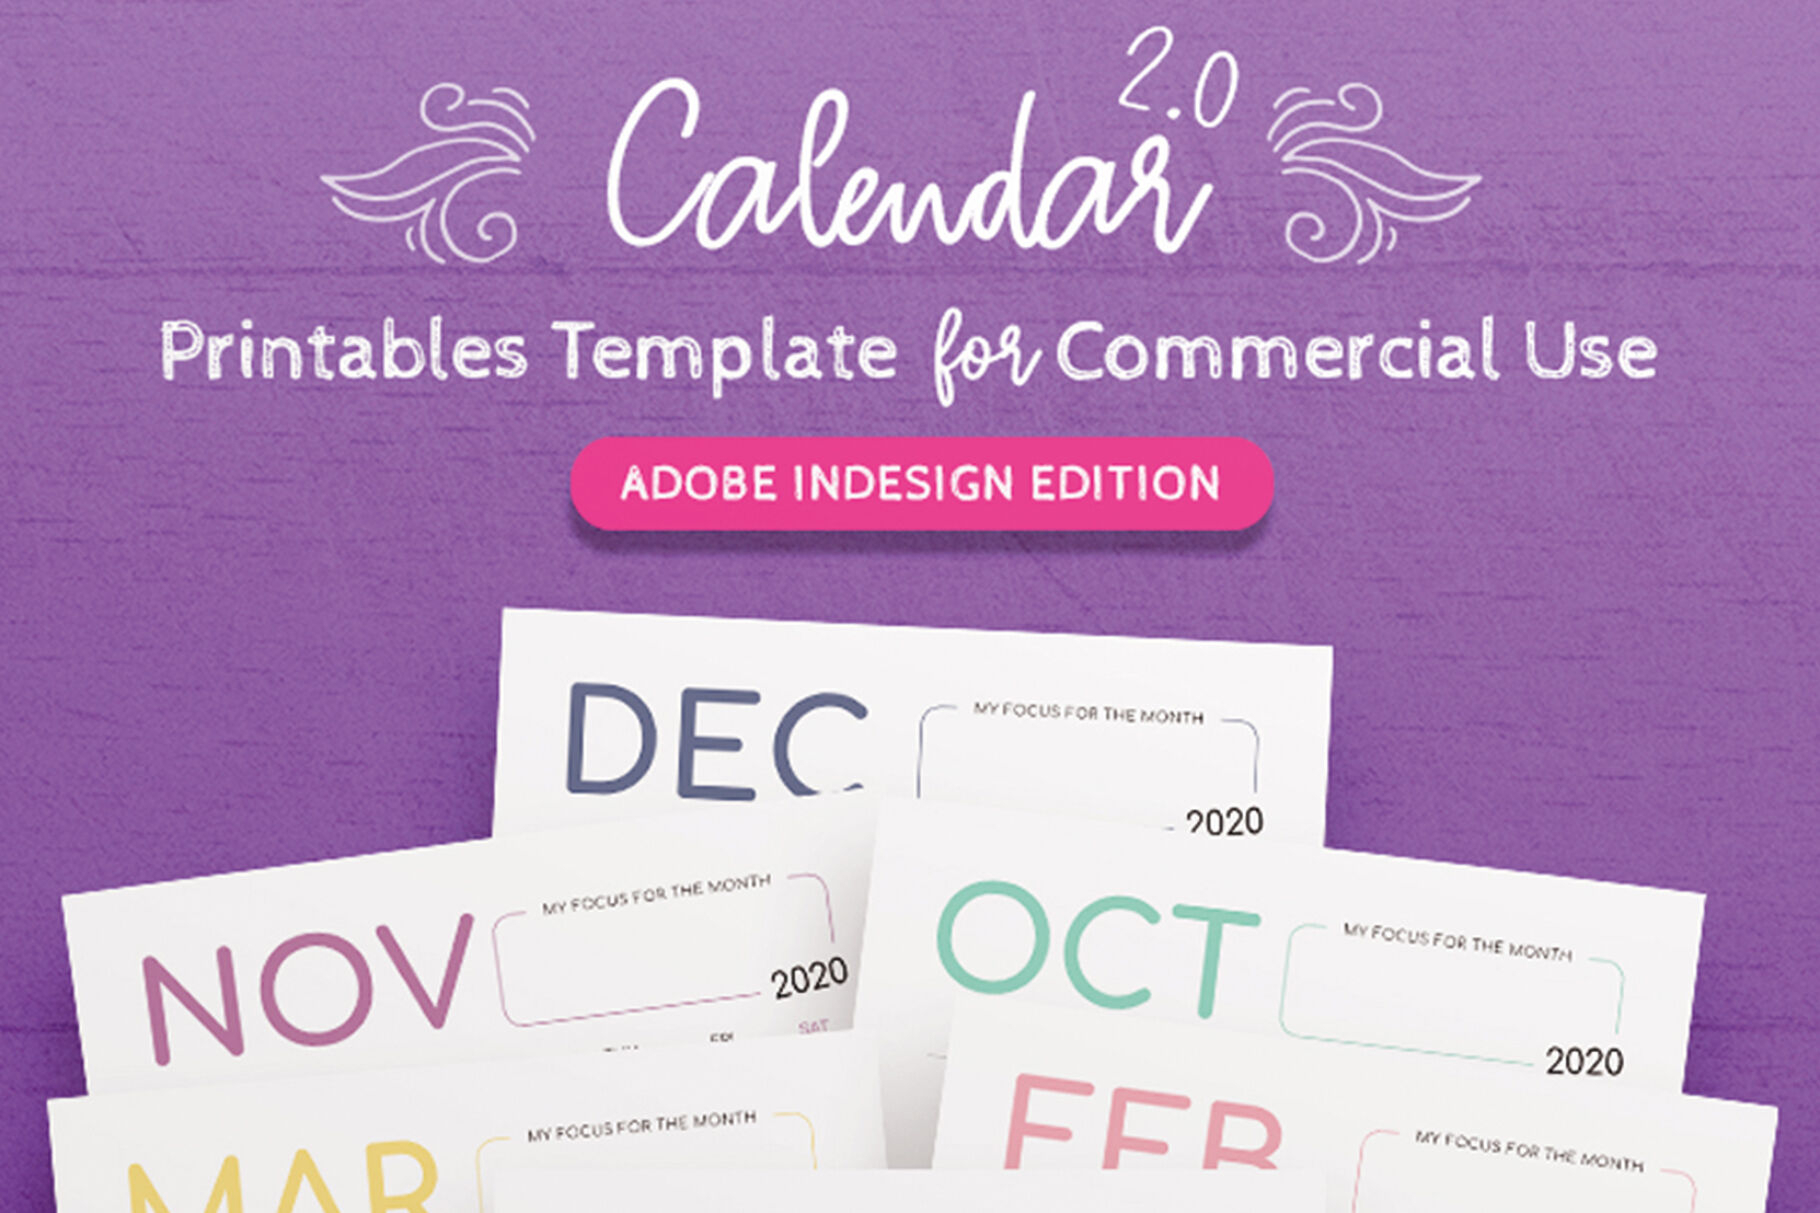 2020 Calendar Indesign Template For Commercial Usejanice with Indesign Calendar Wizard